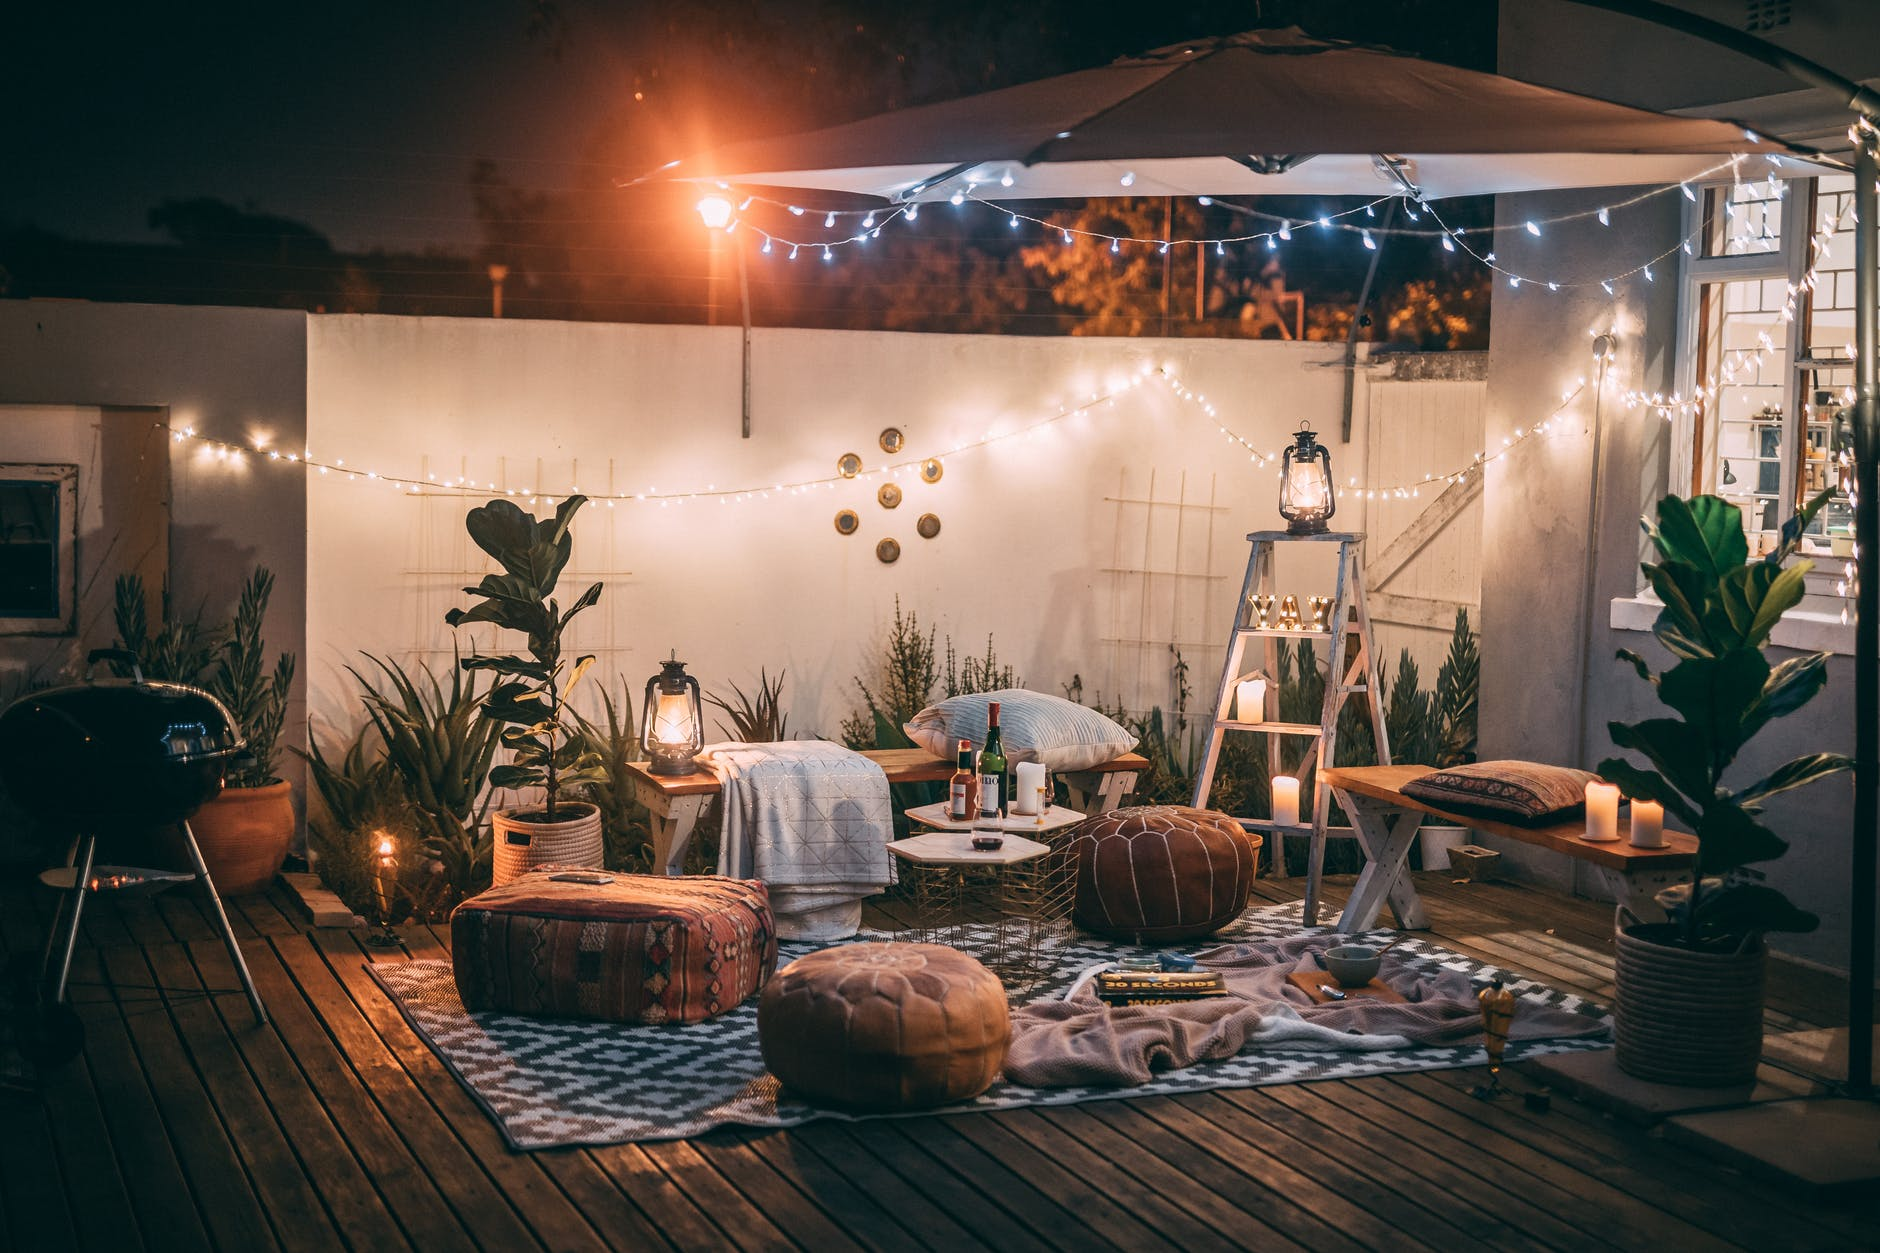 Photo Of Cushion Seats On Ground with string lights and barbeque grill.